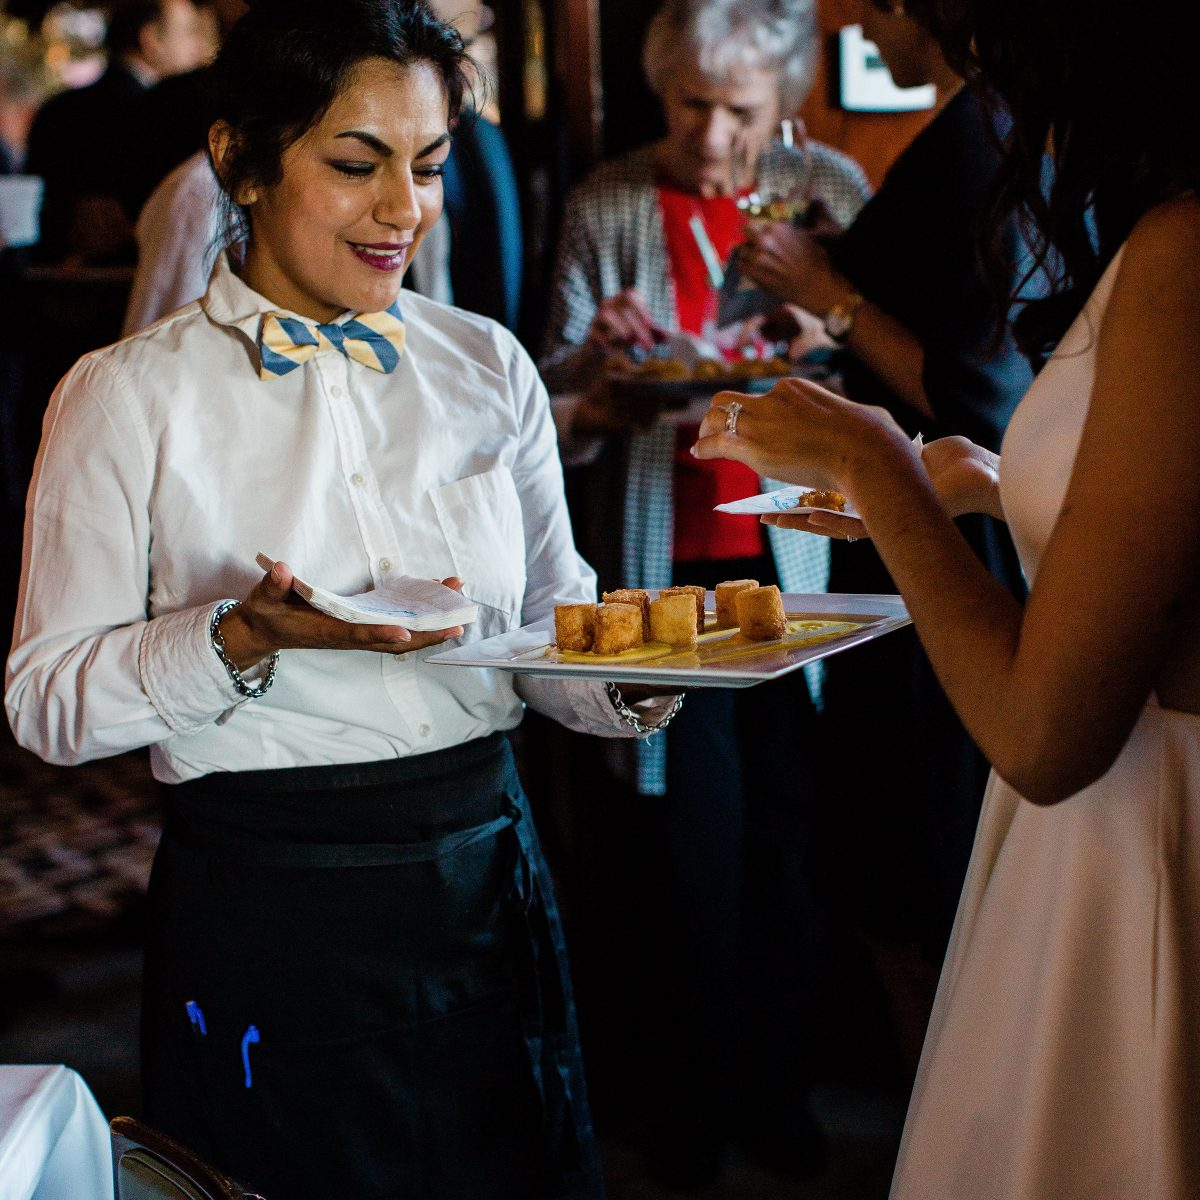 Waitress serving hors d'oeuvres on plate to guest at private event at Cinghiale